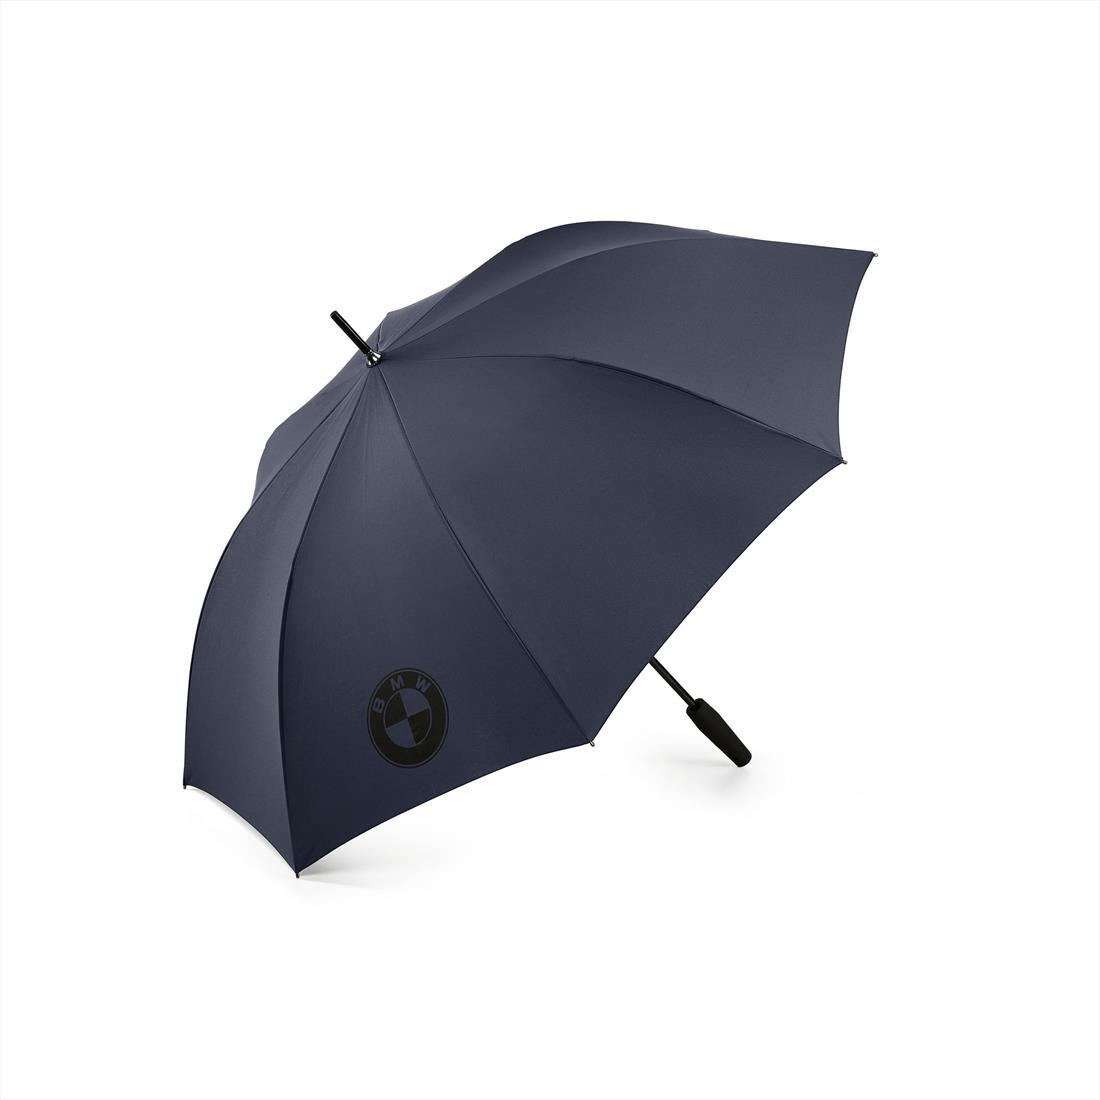 BMW LOGO UMBRELLA